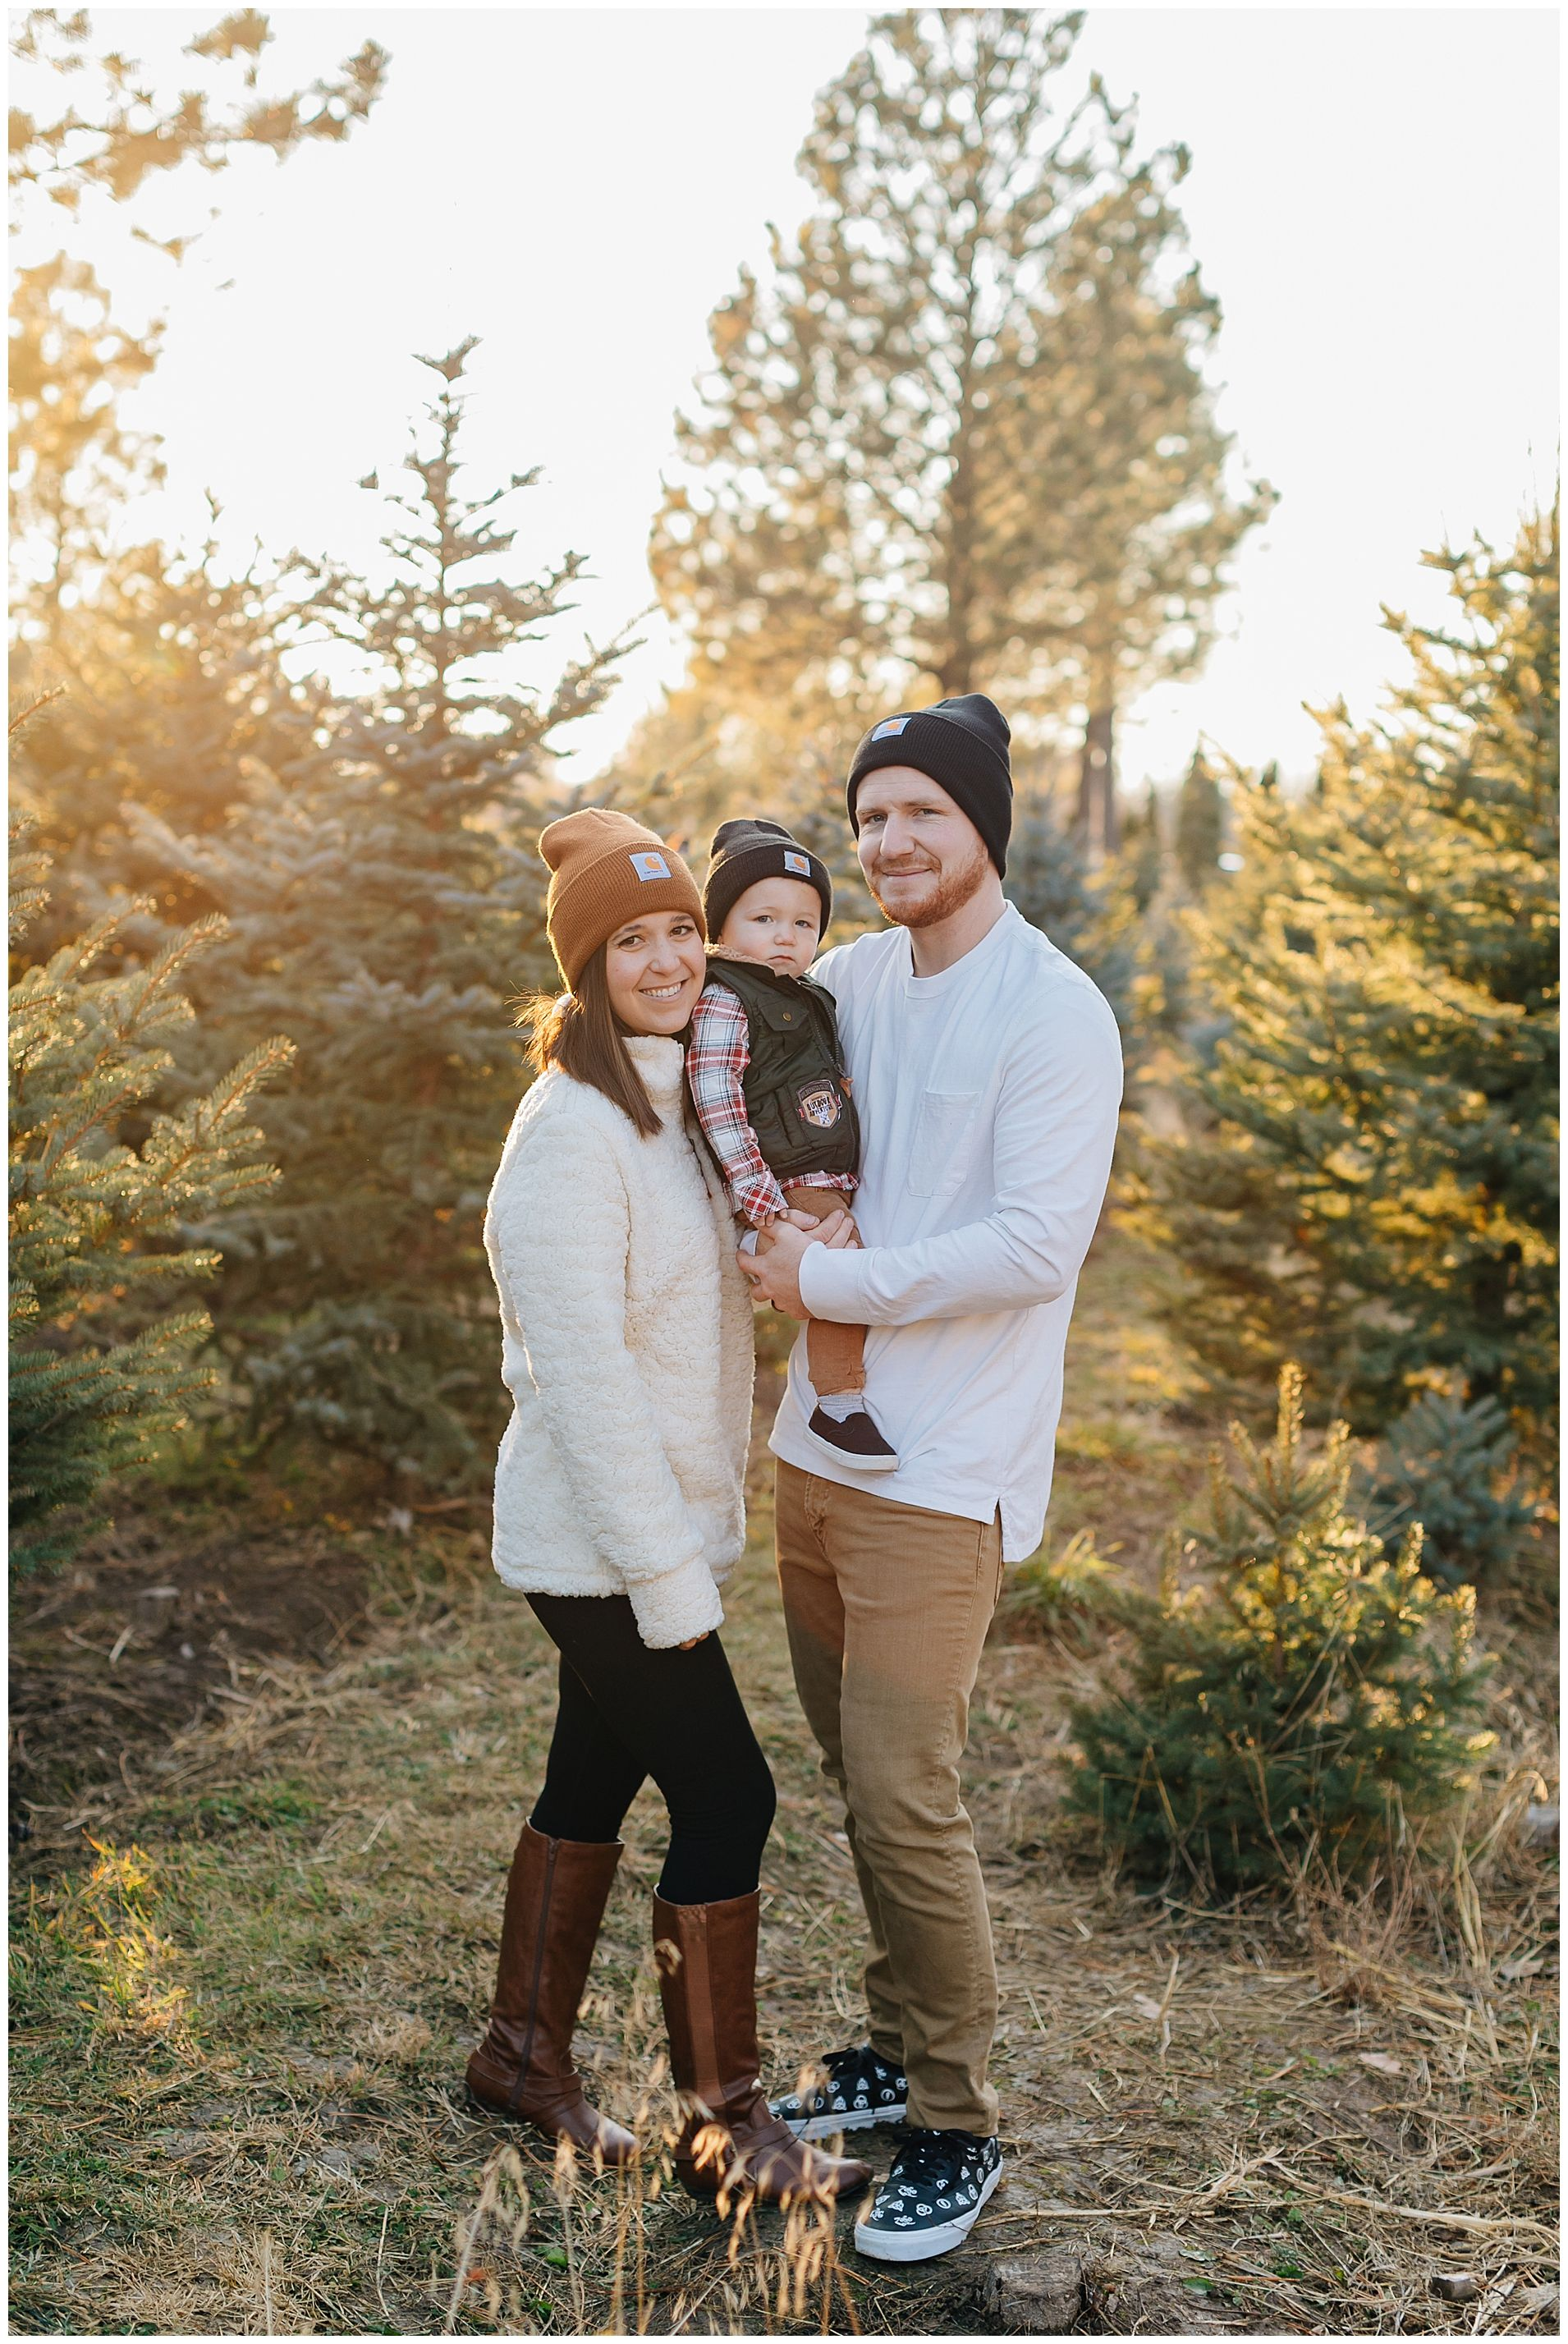 Gerrard Carhartt Beanie Family Pictures Truly Photography Winter Family Pictures Farm Family Pictures Cute Family Pictures